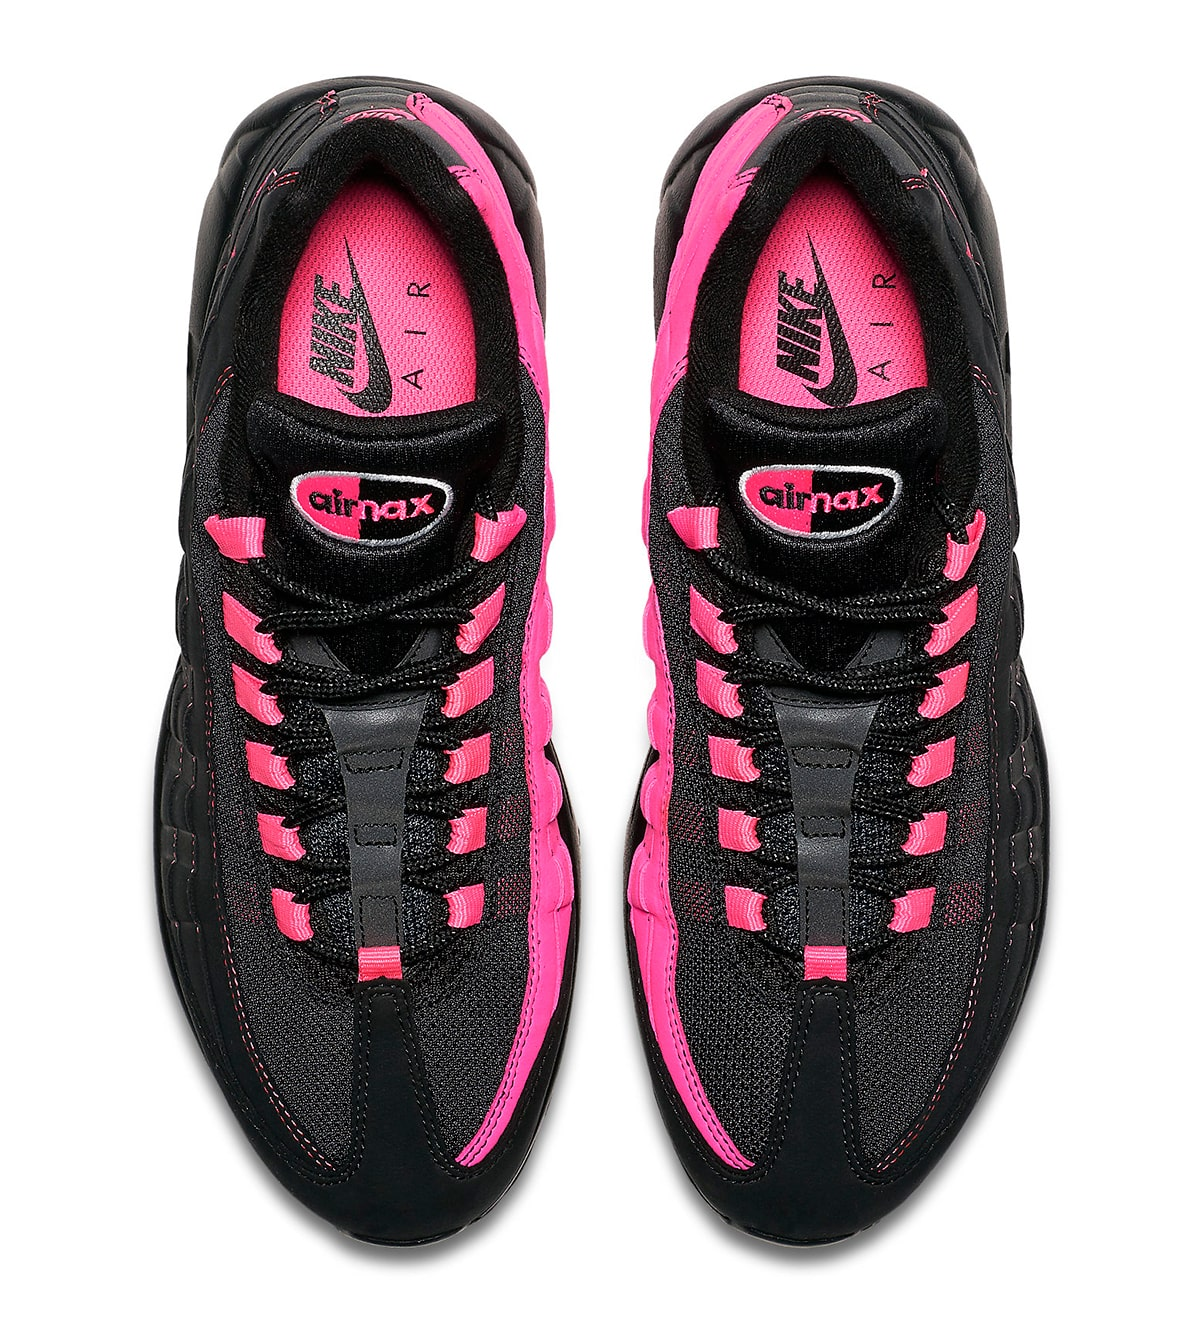 Nike Air Max 95 Gets Split in Black and